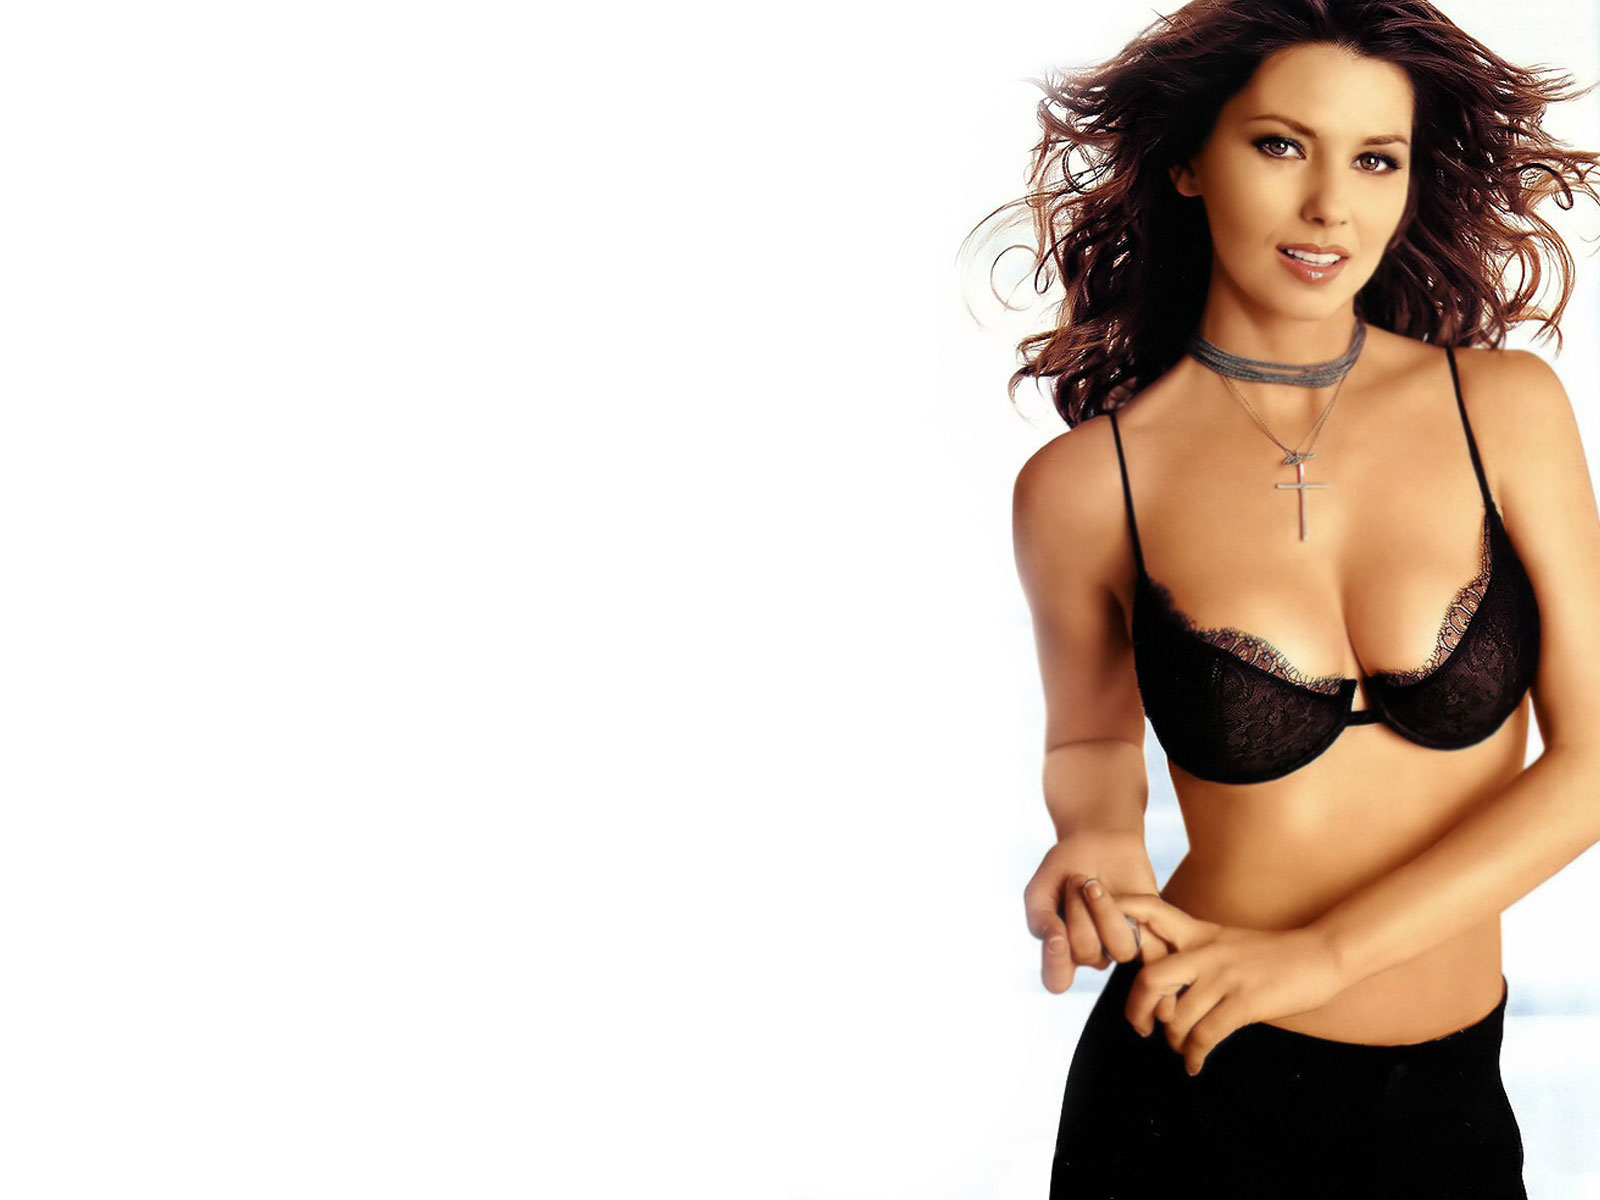 download shania twain wallpapers gallery